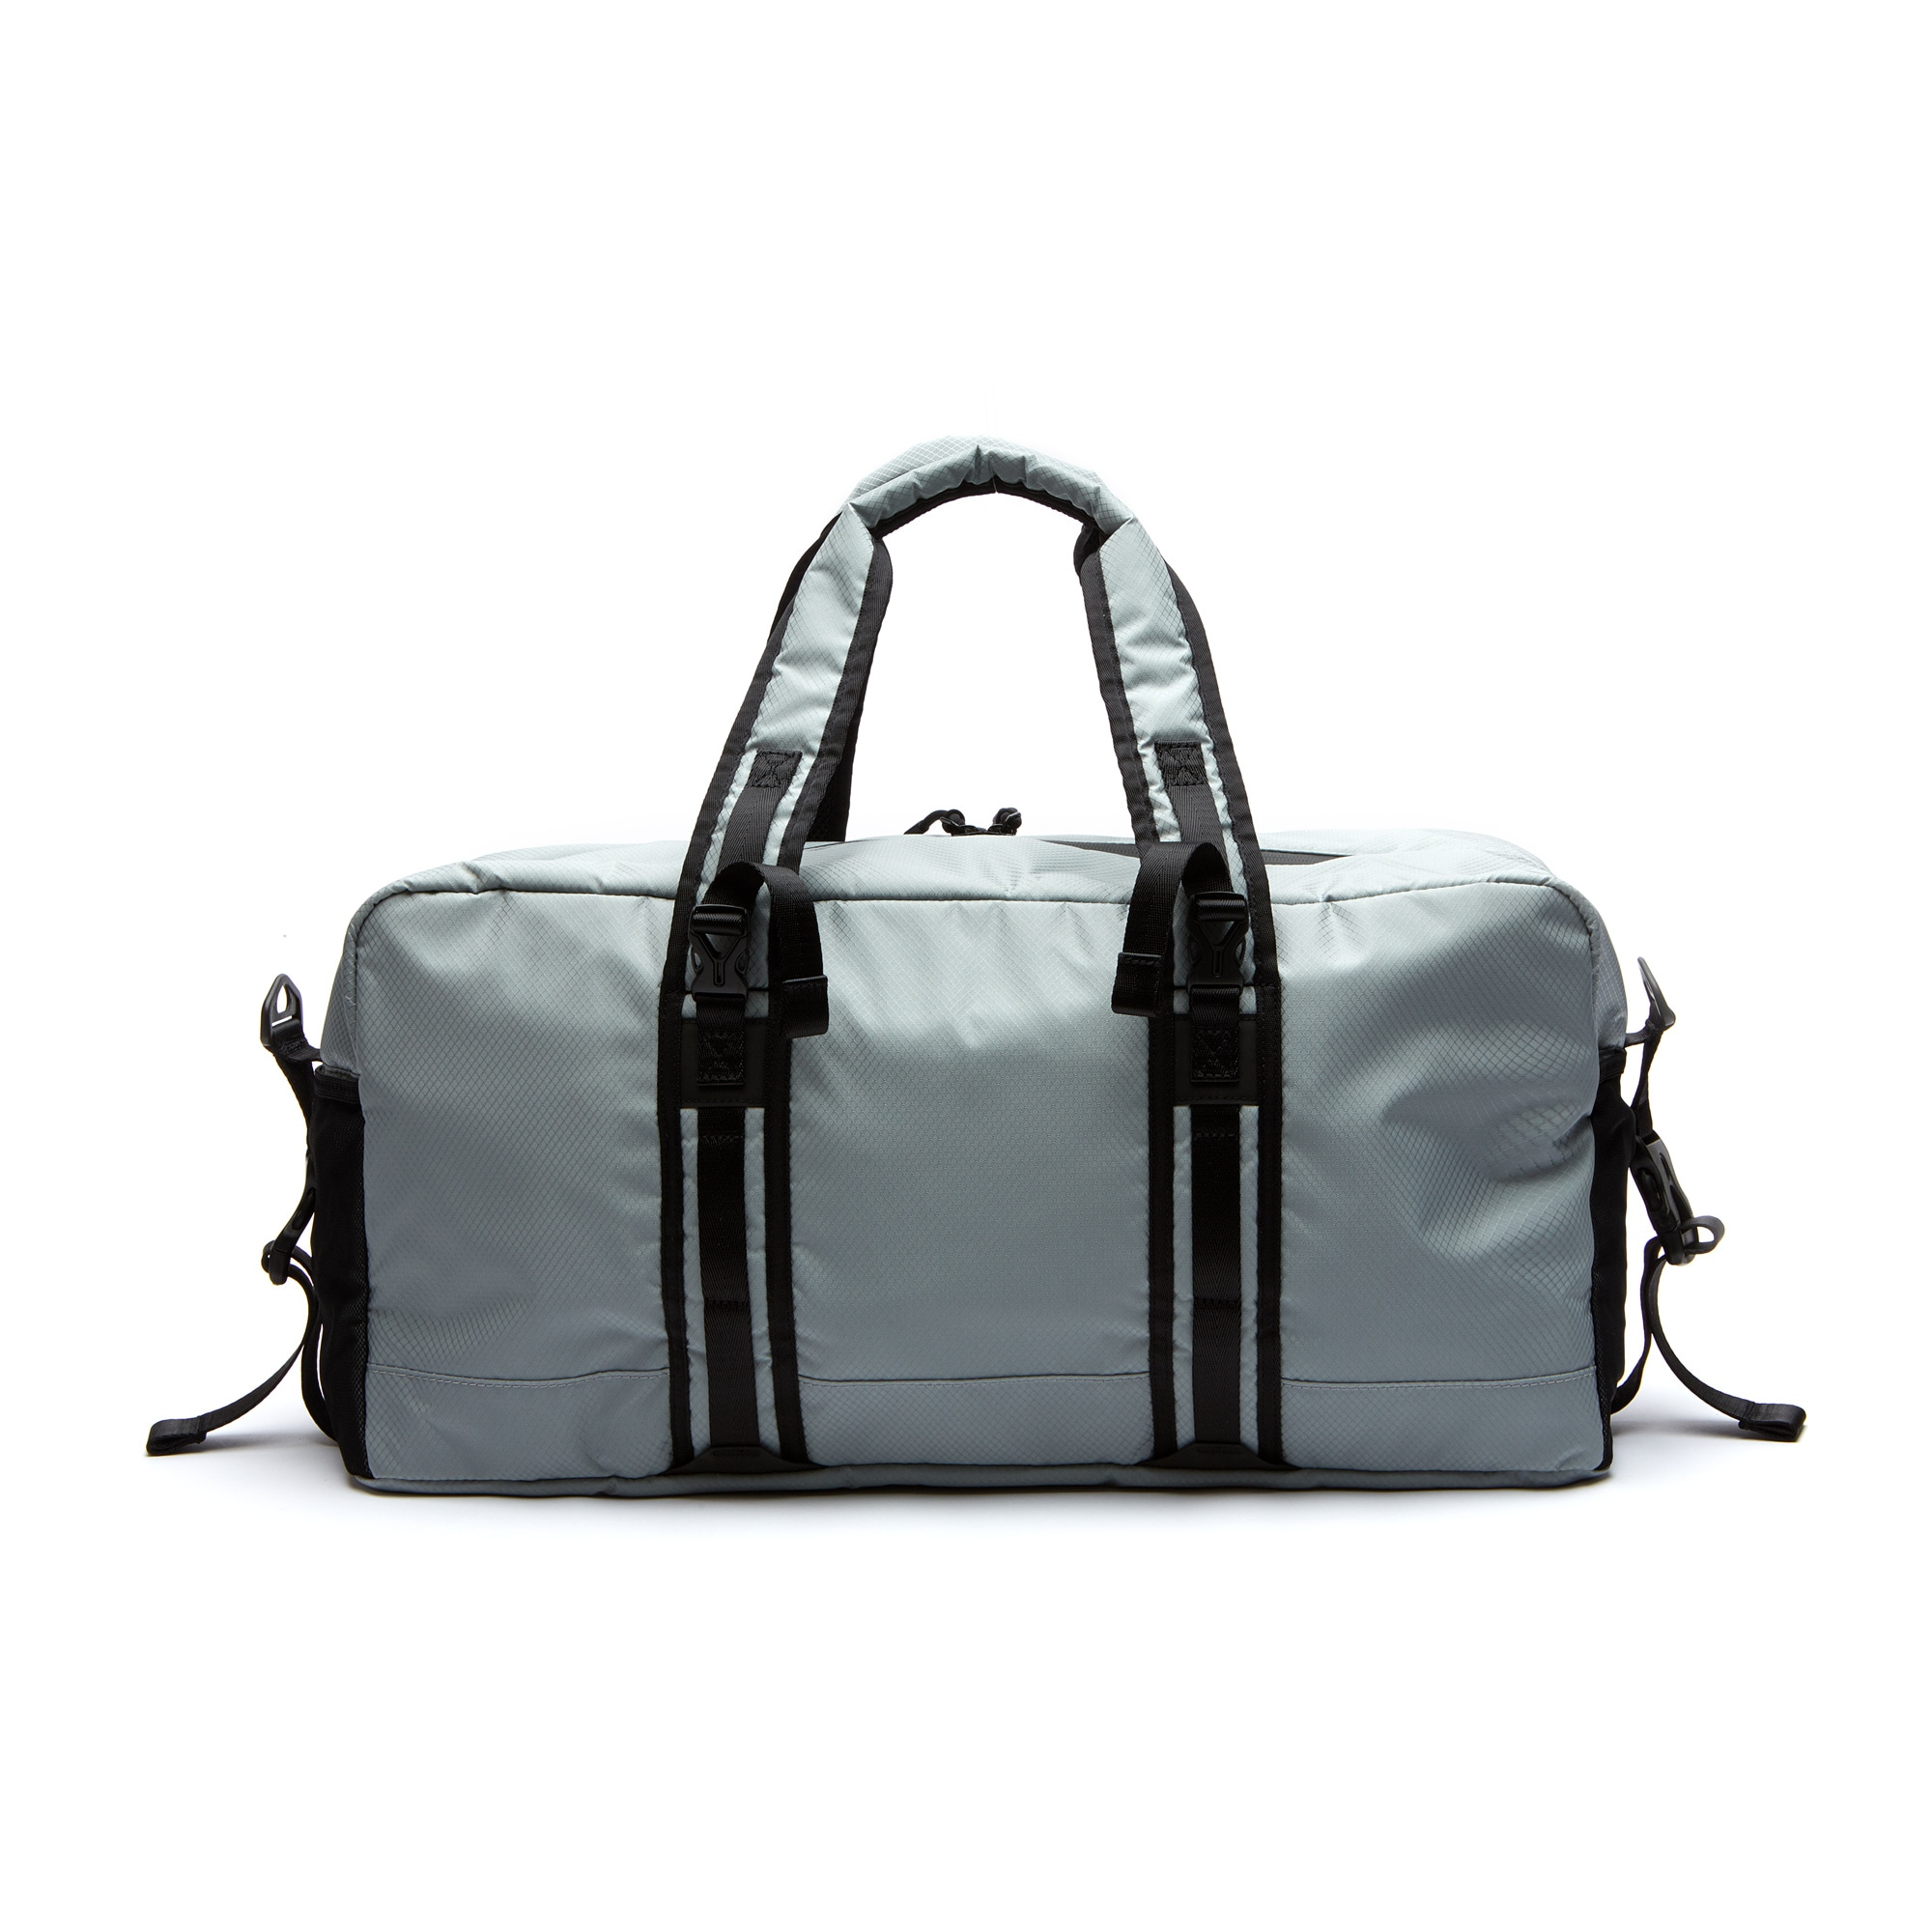 Polochon Sac Point Lacoste En Match Nylon Sport 0xT7B